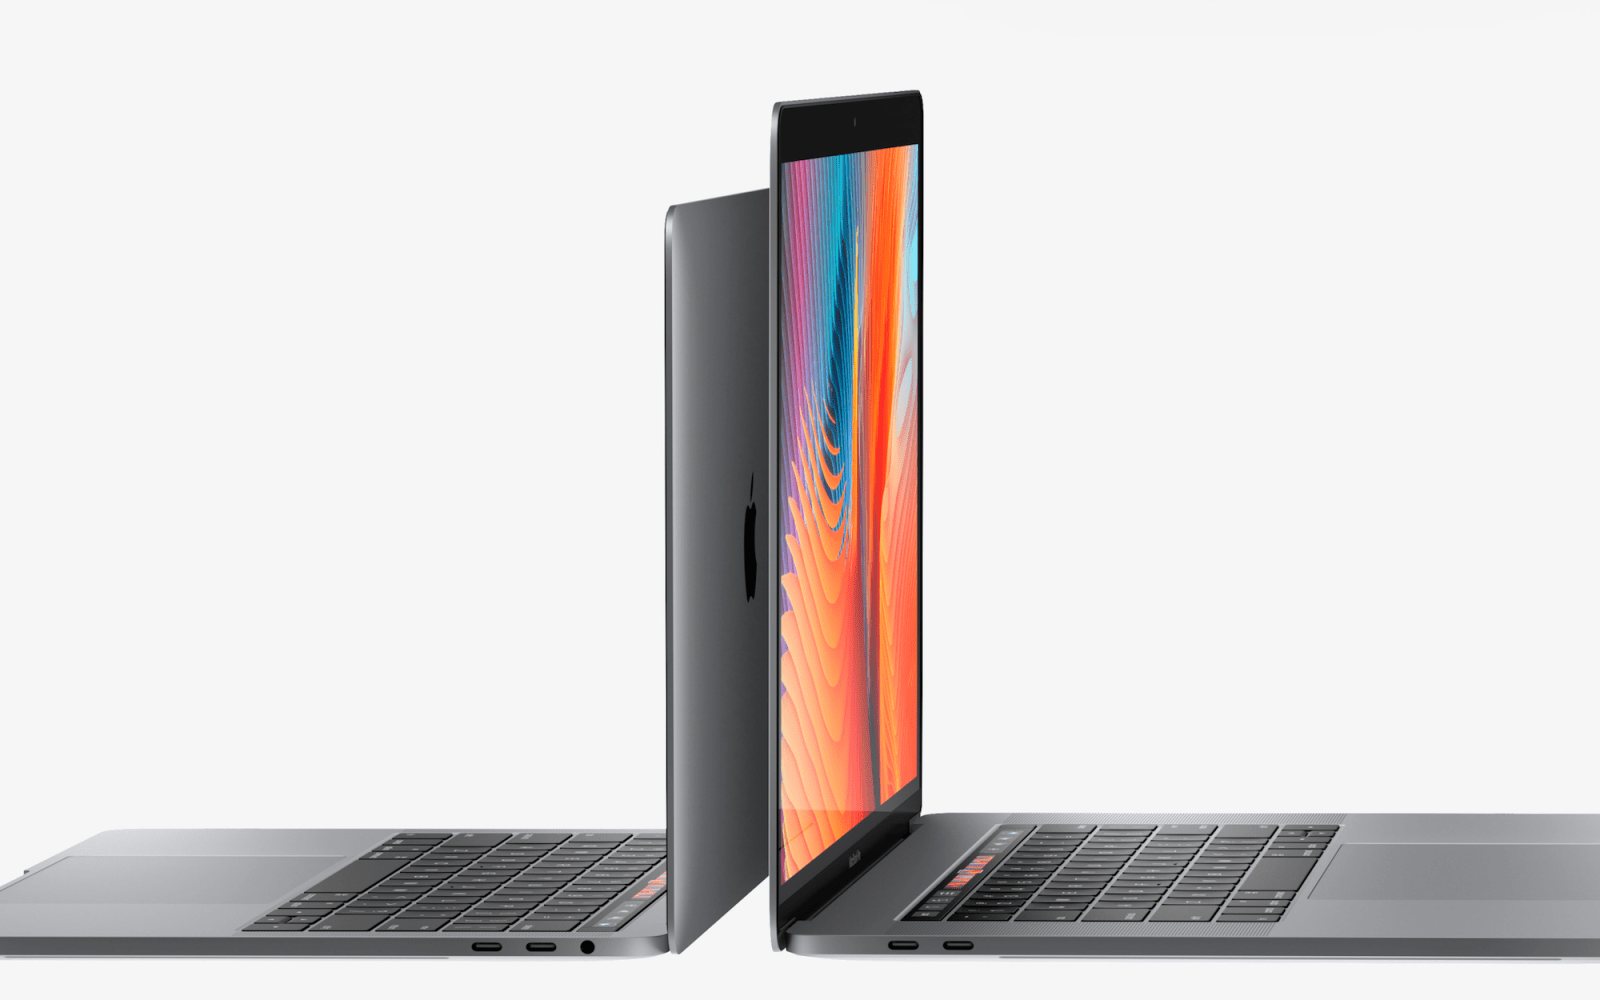 New MacBook Pro owners with USB printers, mics, and audio equipment